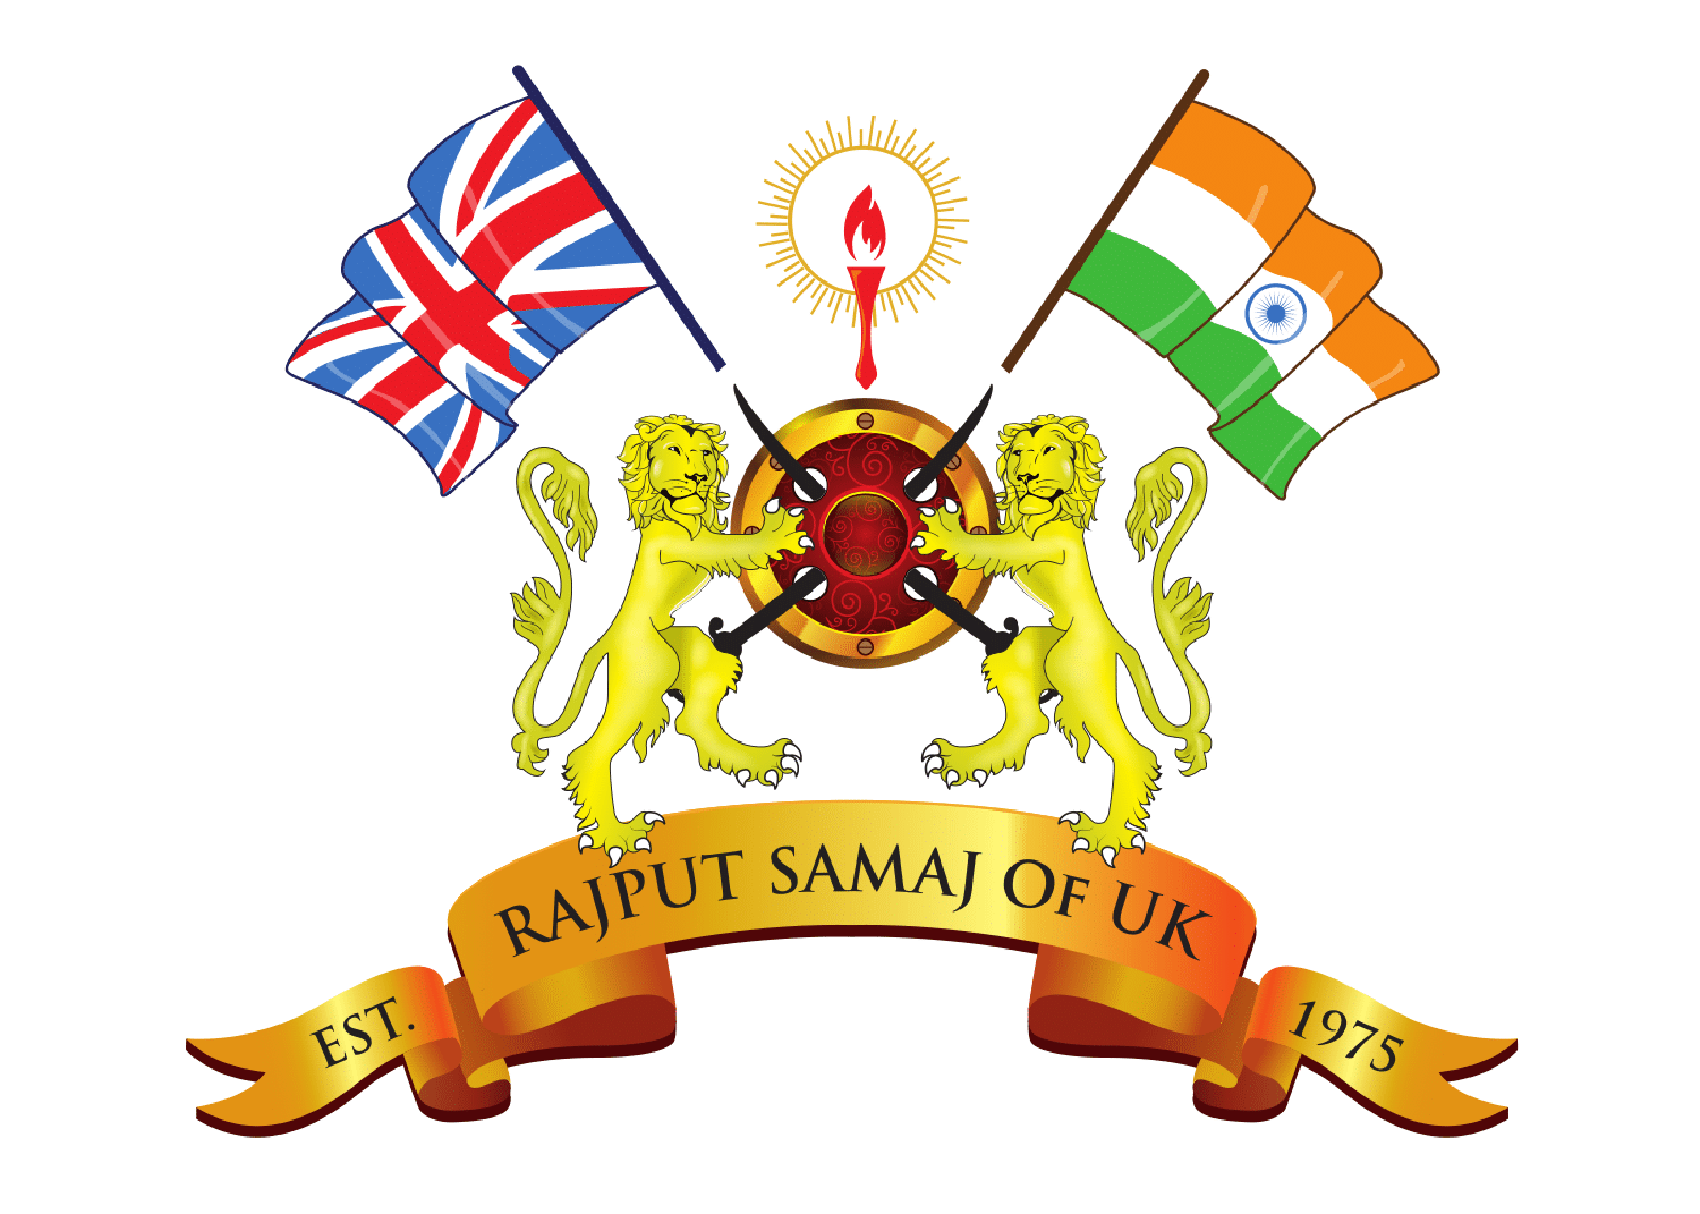 Rajput Samaj Of UK